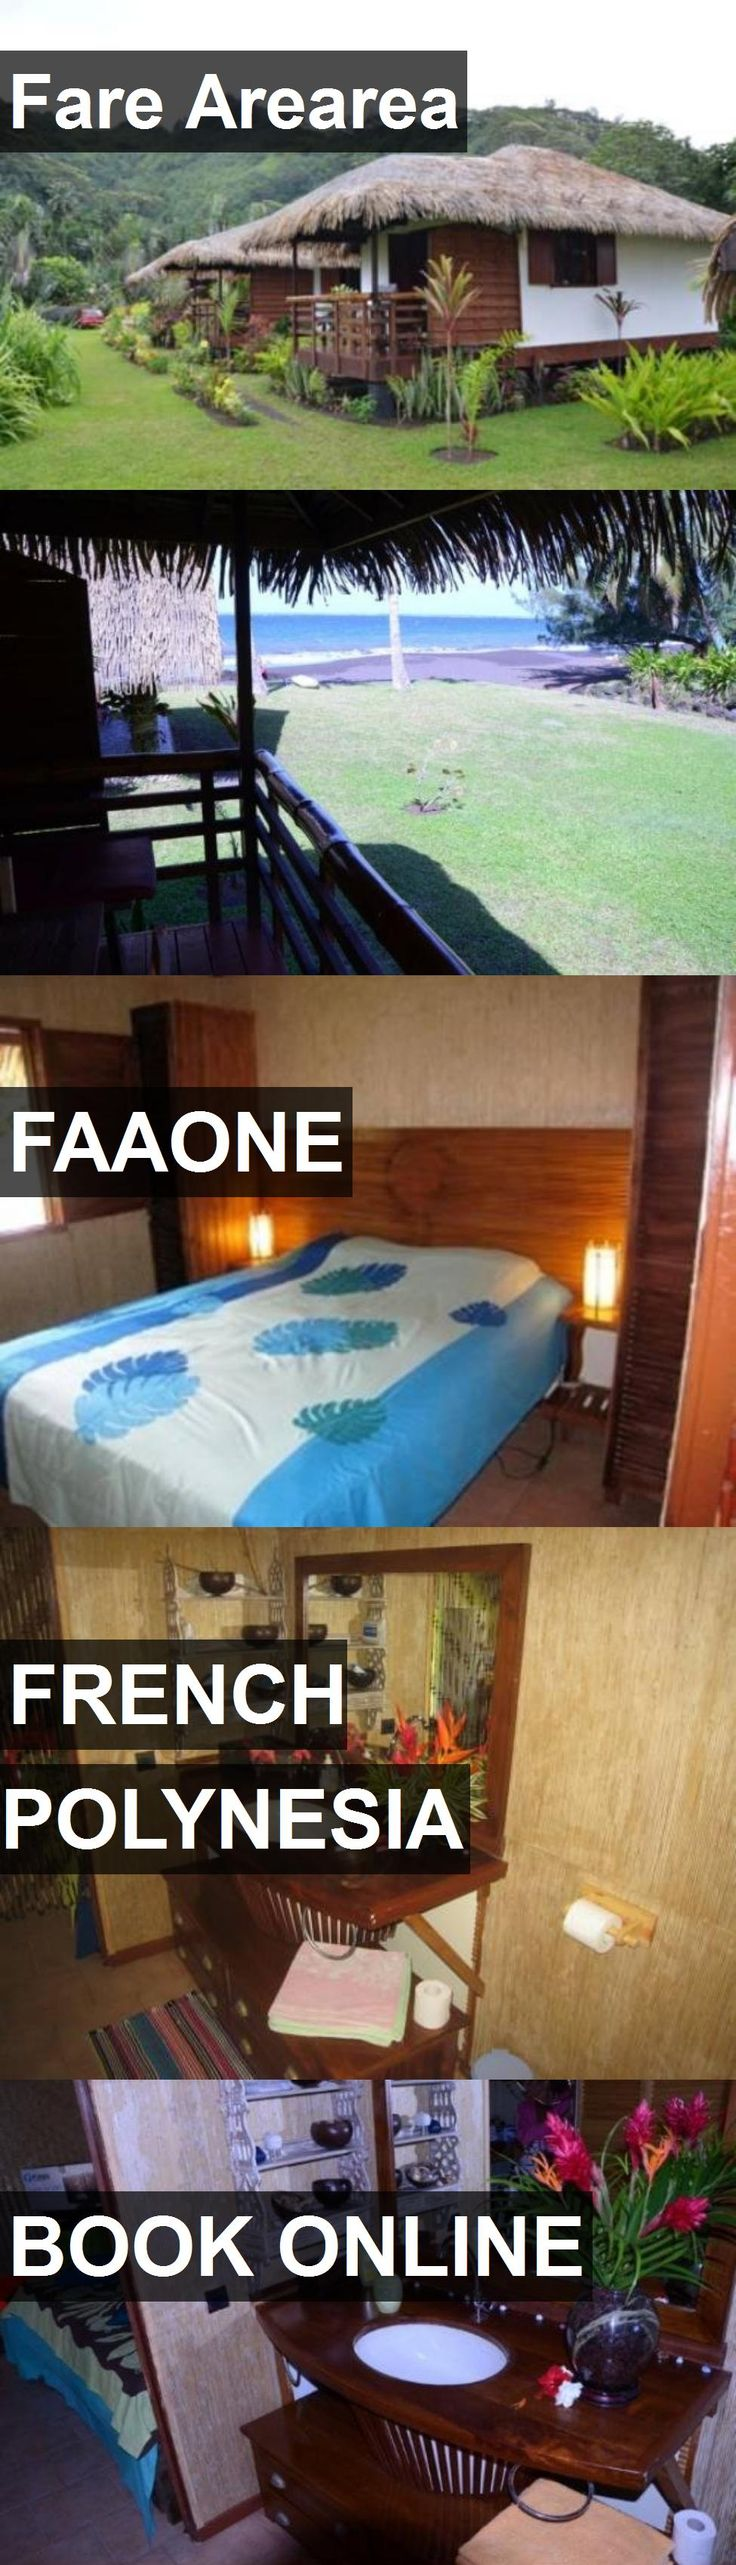 Hotel Fare Arearea in Faaone, French Polynesia. For more information, photos, reviews and best prices please follow the link. #FrenchPolynesia #Faaone #travel #vacation #hotel